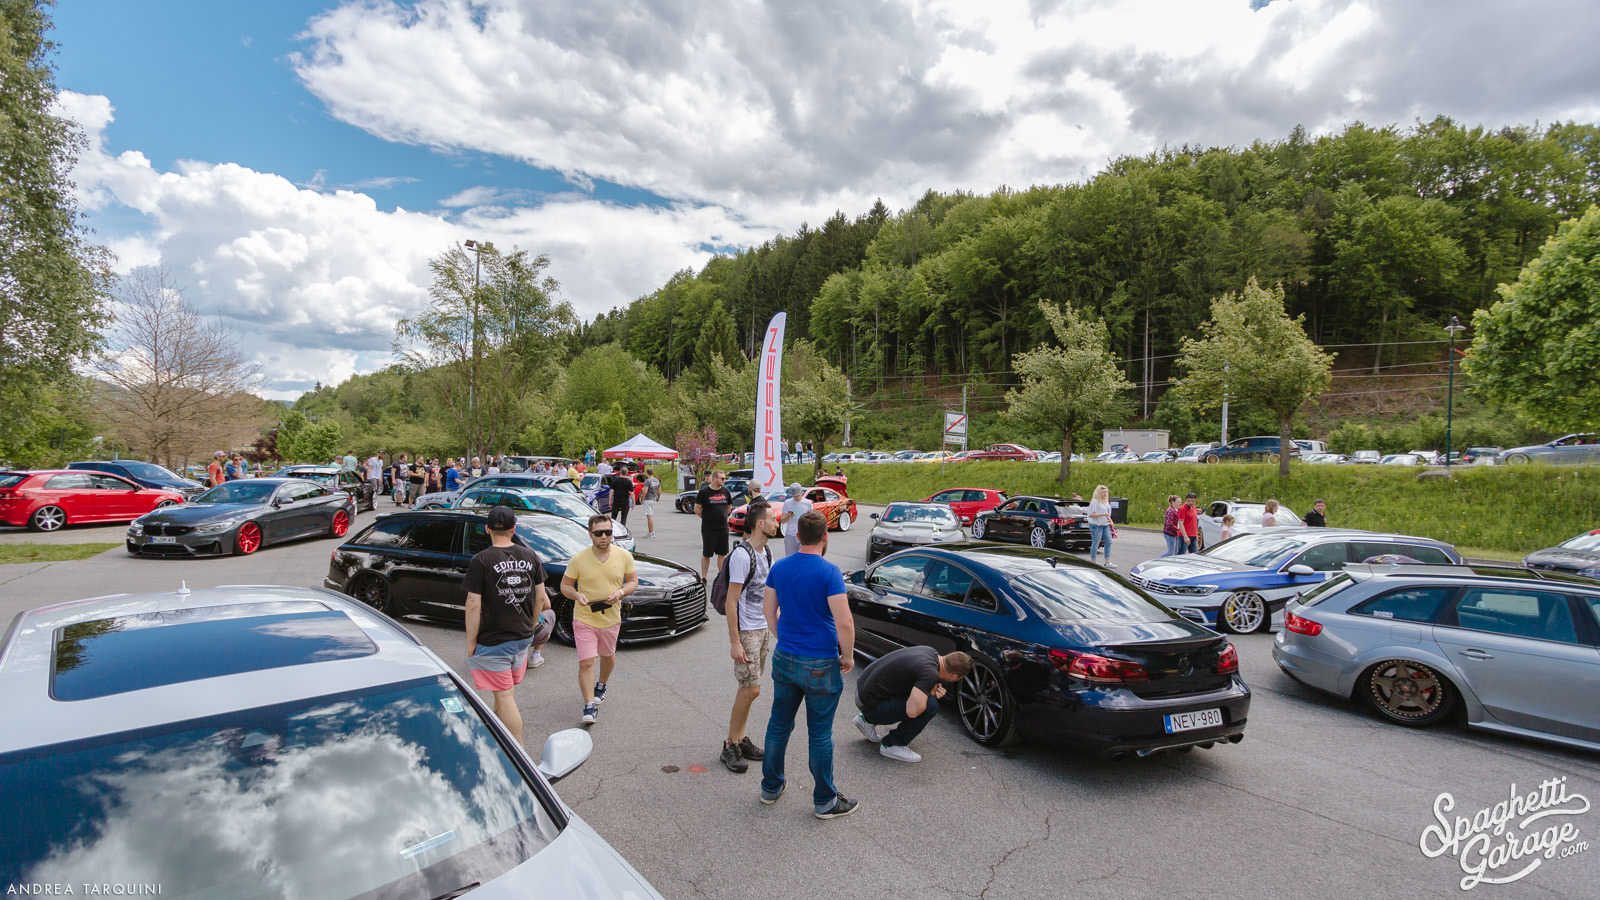 GTI Treffen's metamorphosis – Where the Wörth is really going to?